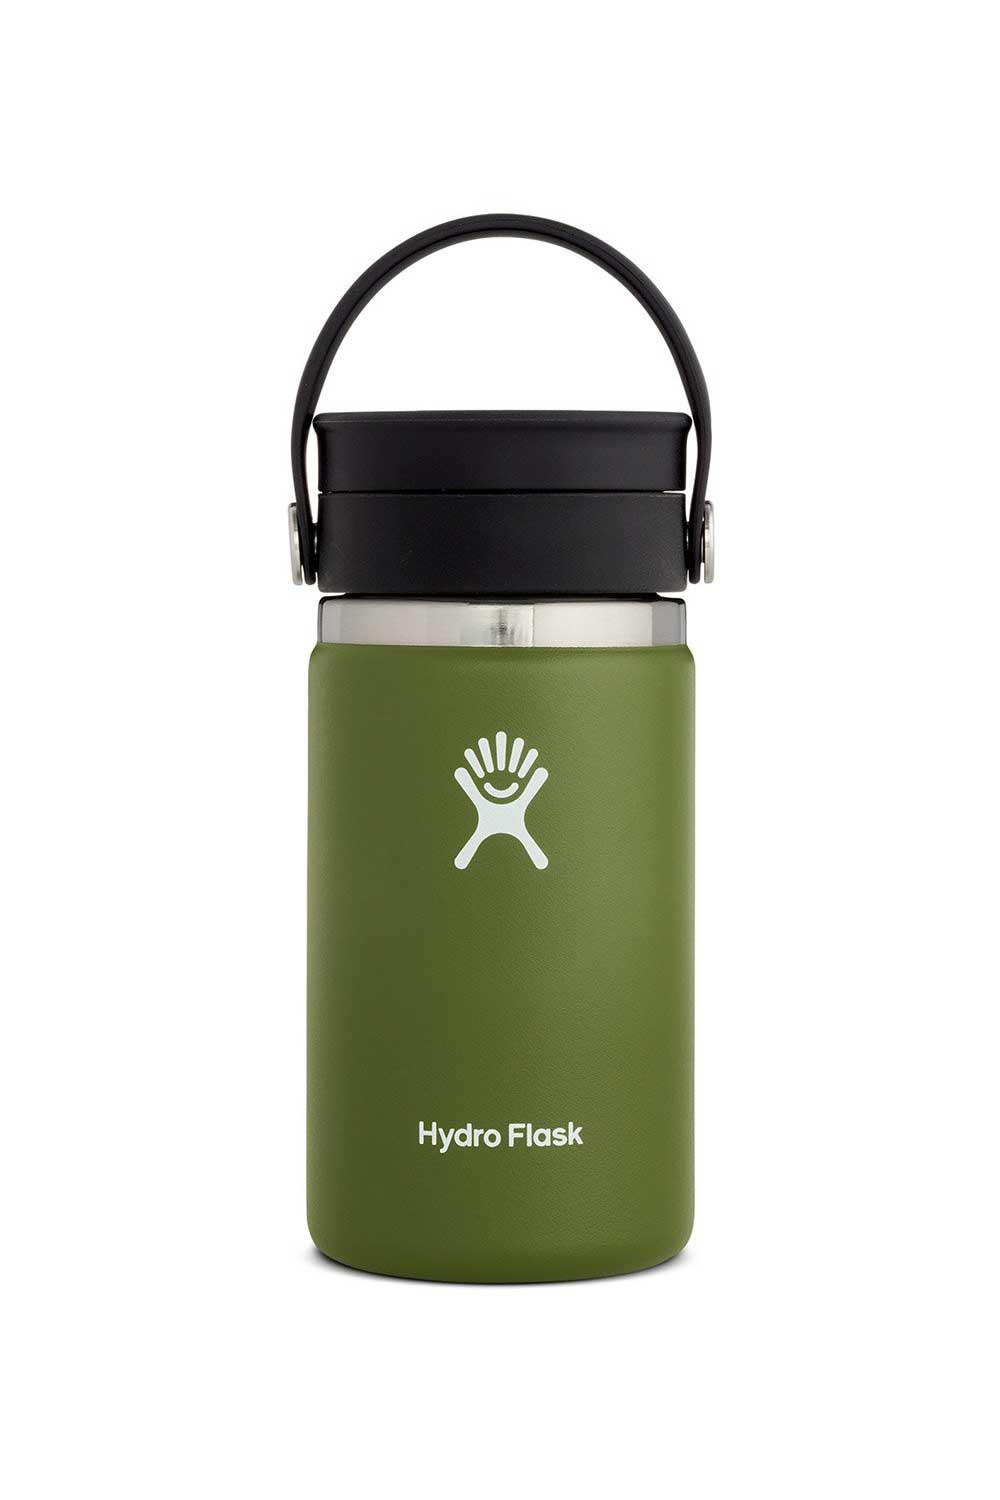 Hydro Flask 12oz (355ml) SIP Coffee Cup